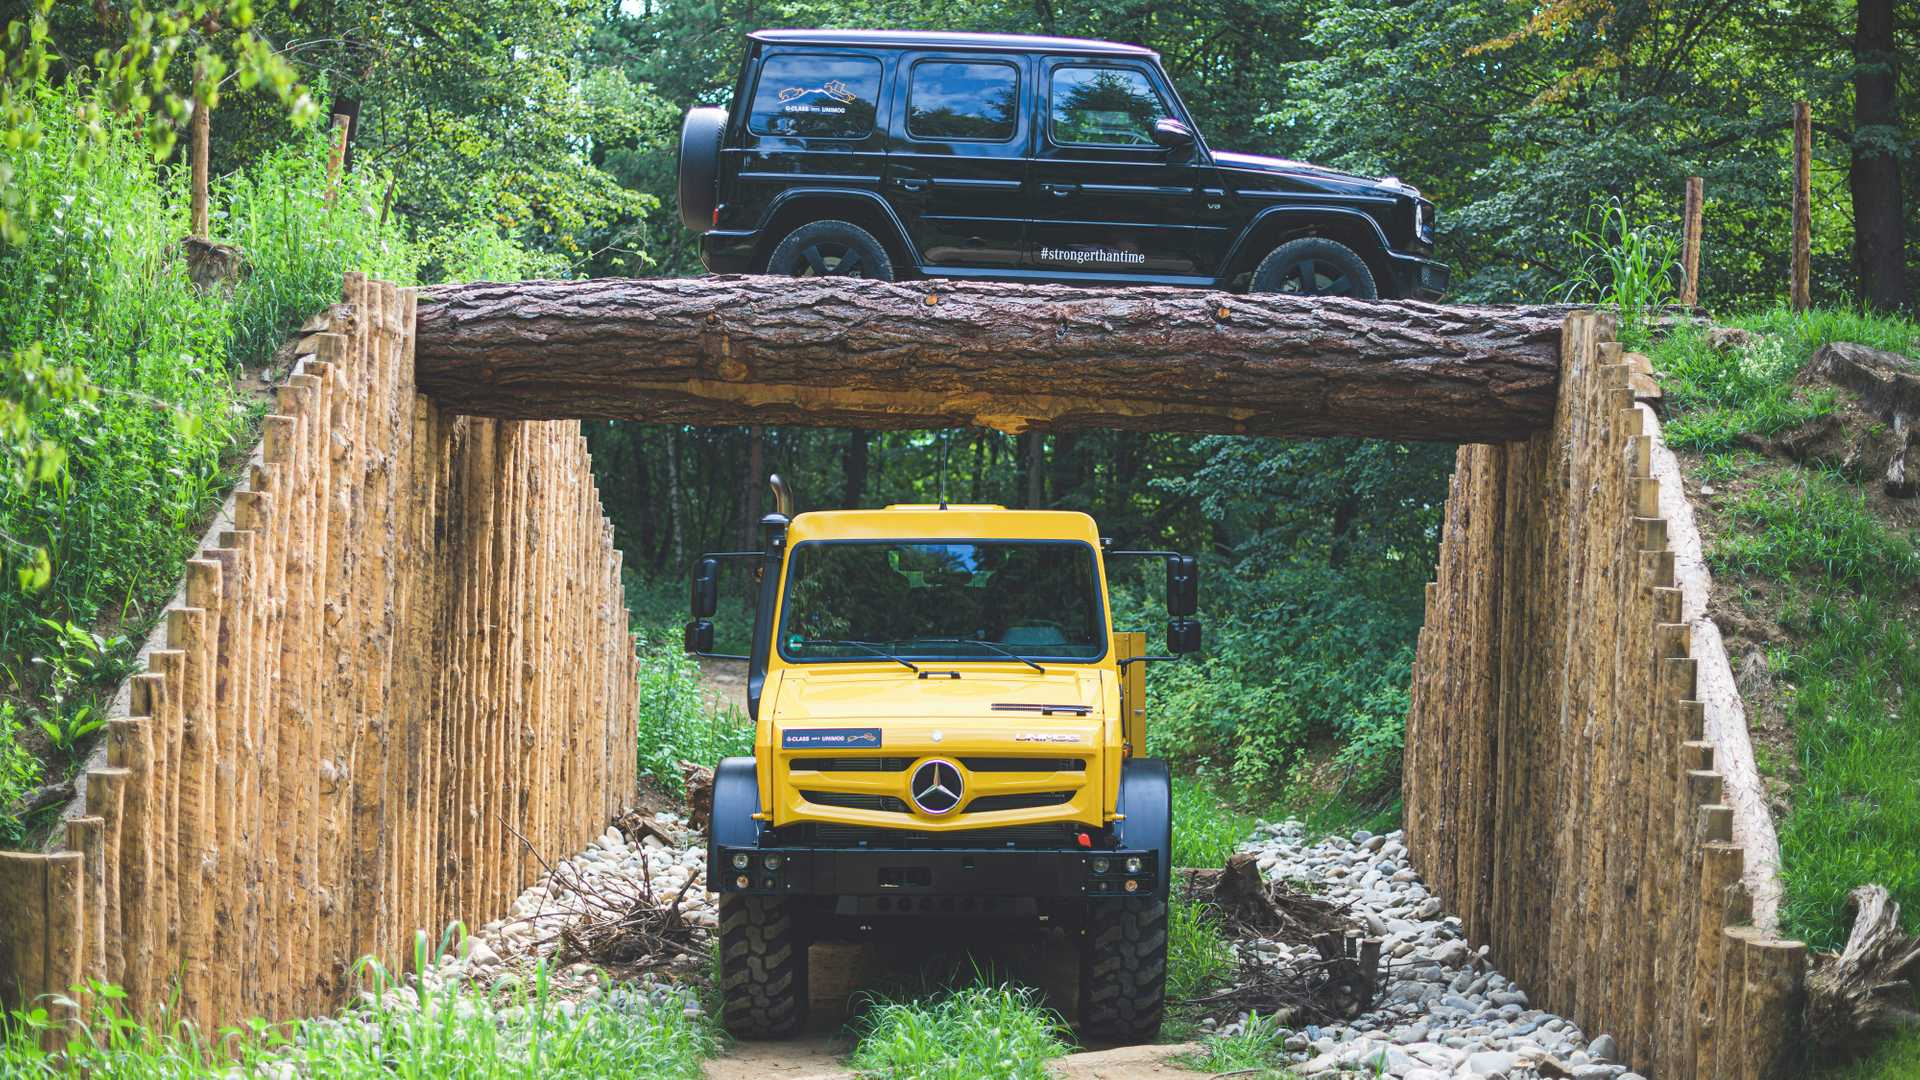 See Mercedes Unimog And G-Class Demonstrate Their Off-Road Chops